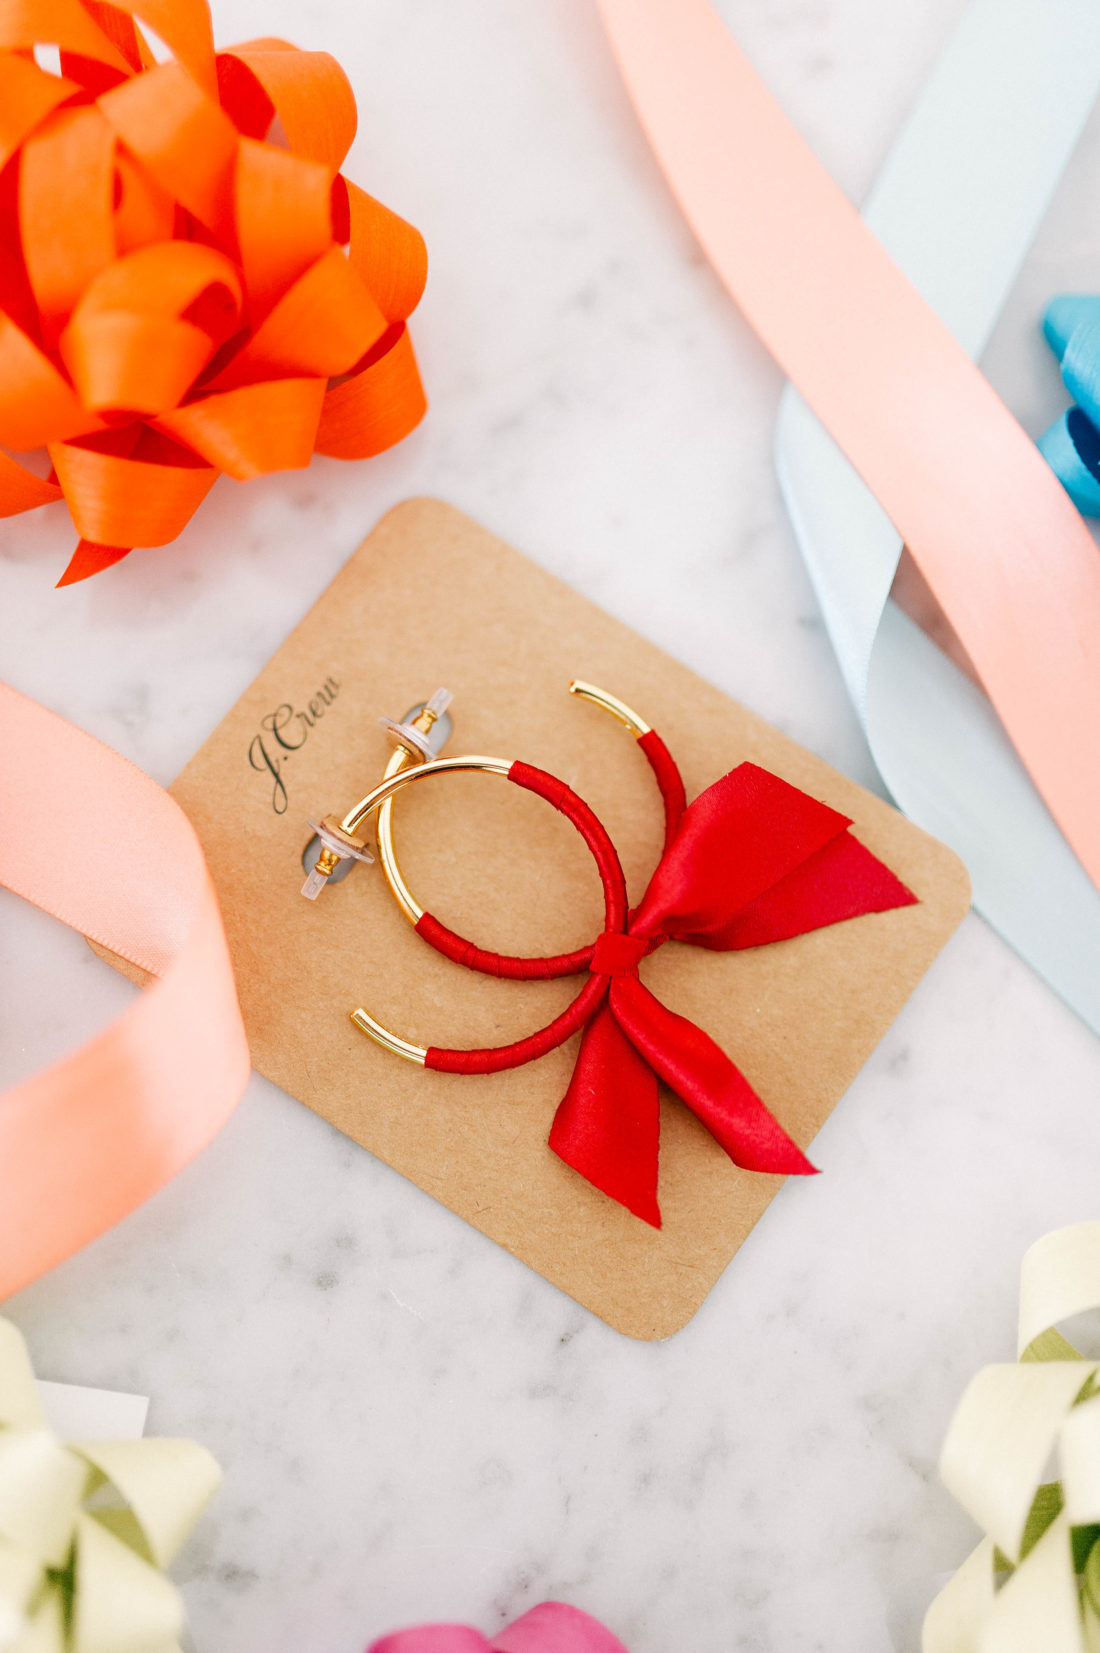 Eva Amurri Martino shares her roundup of favorite products for December, including this pair of ribbon accented hoop earrings